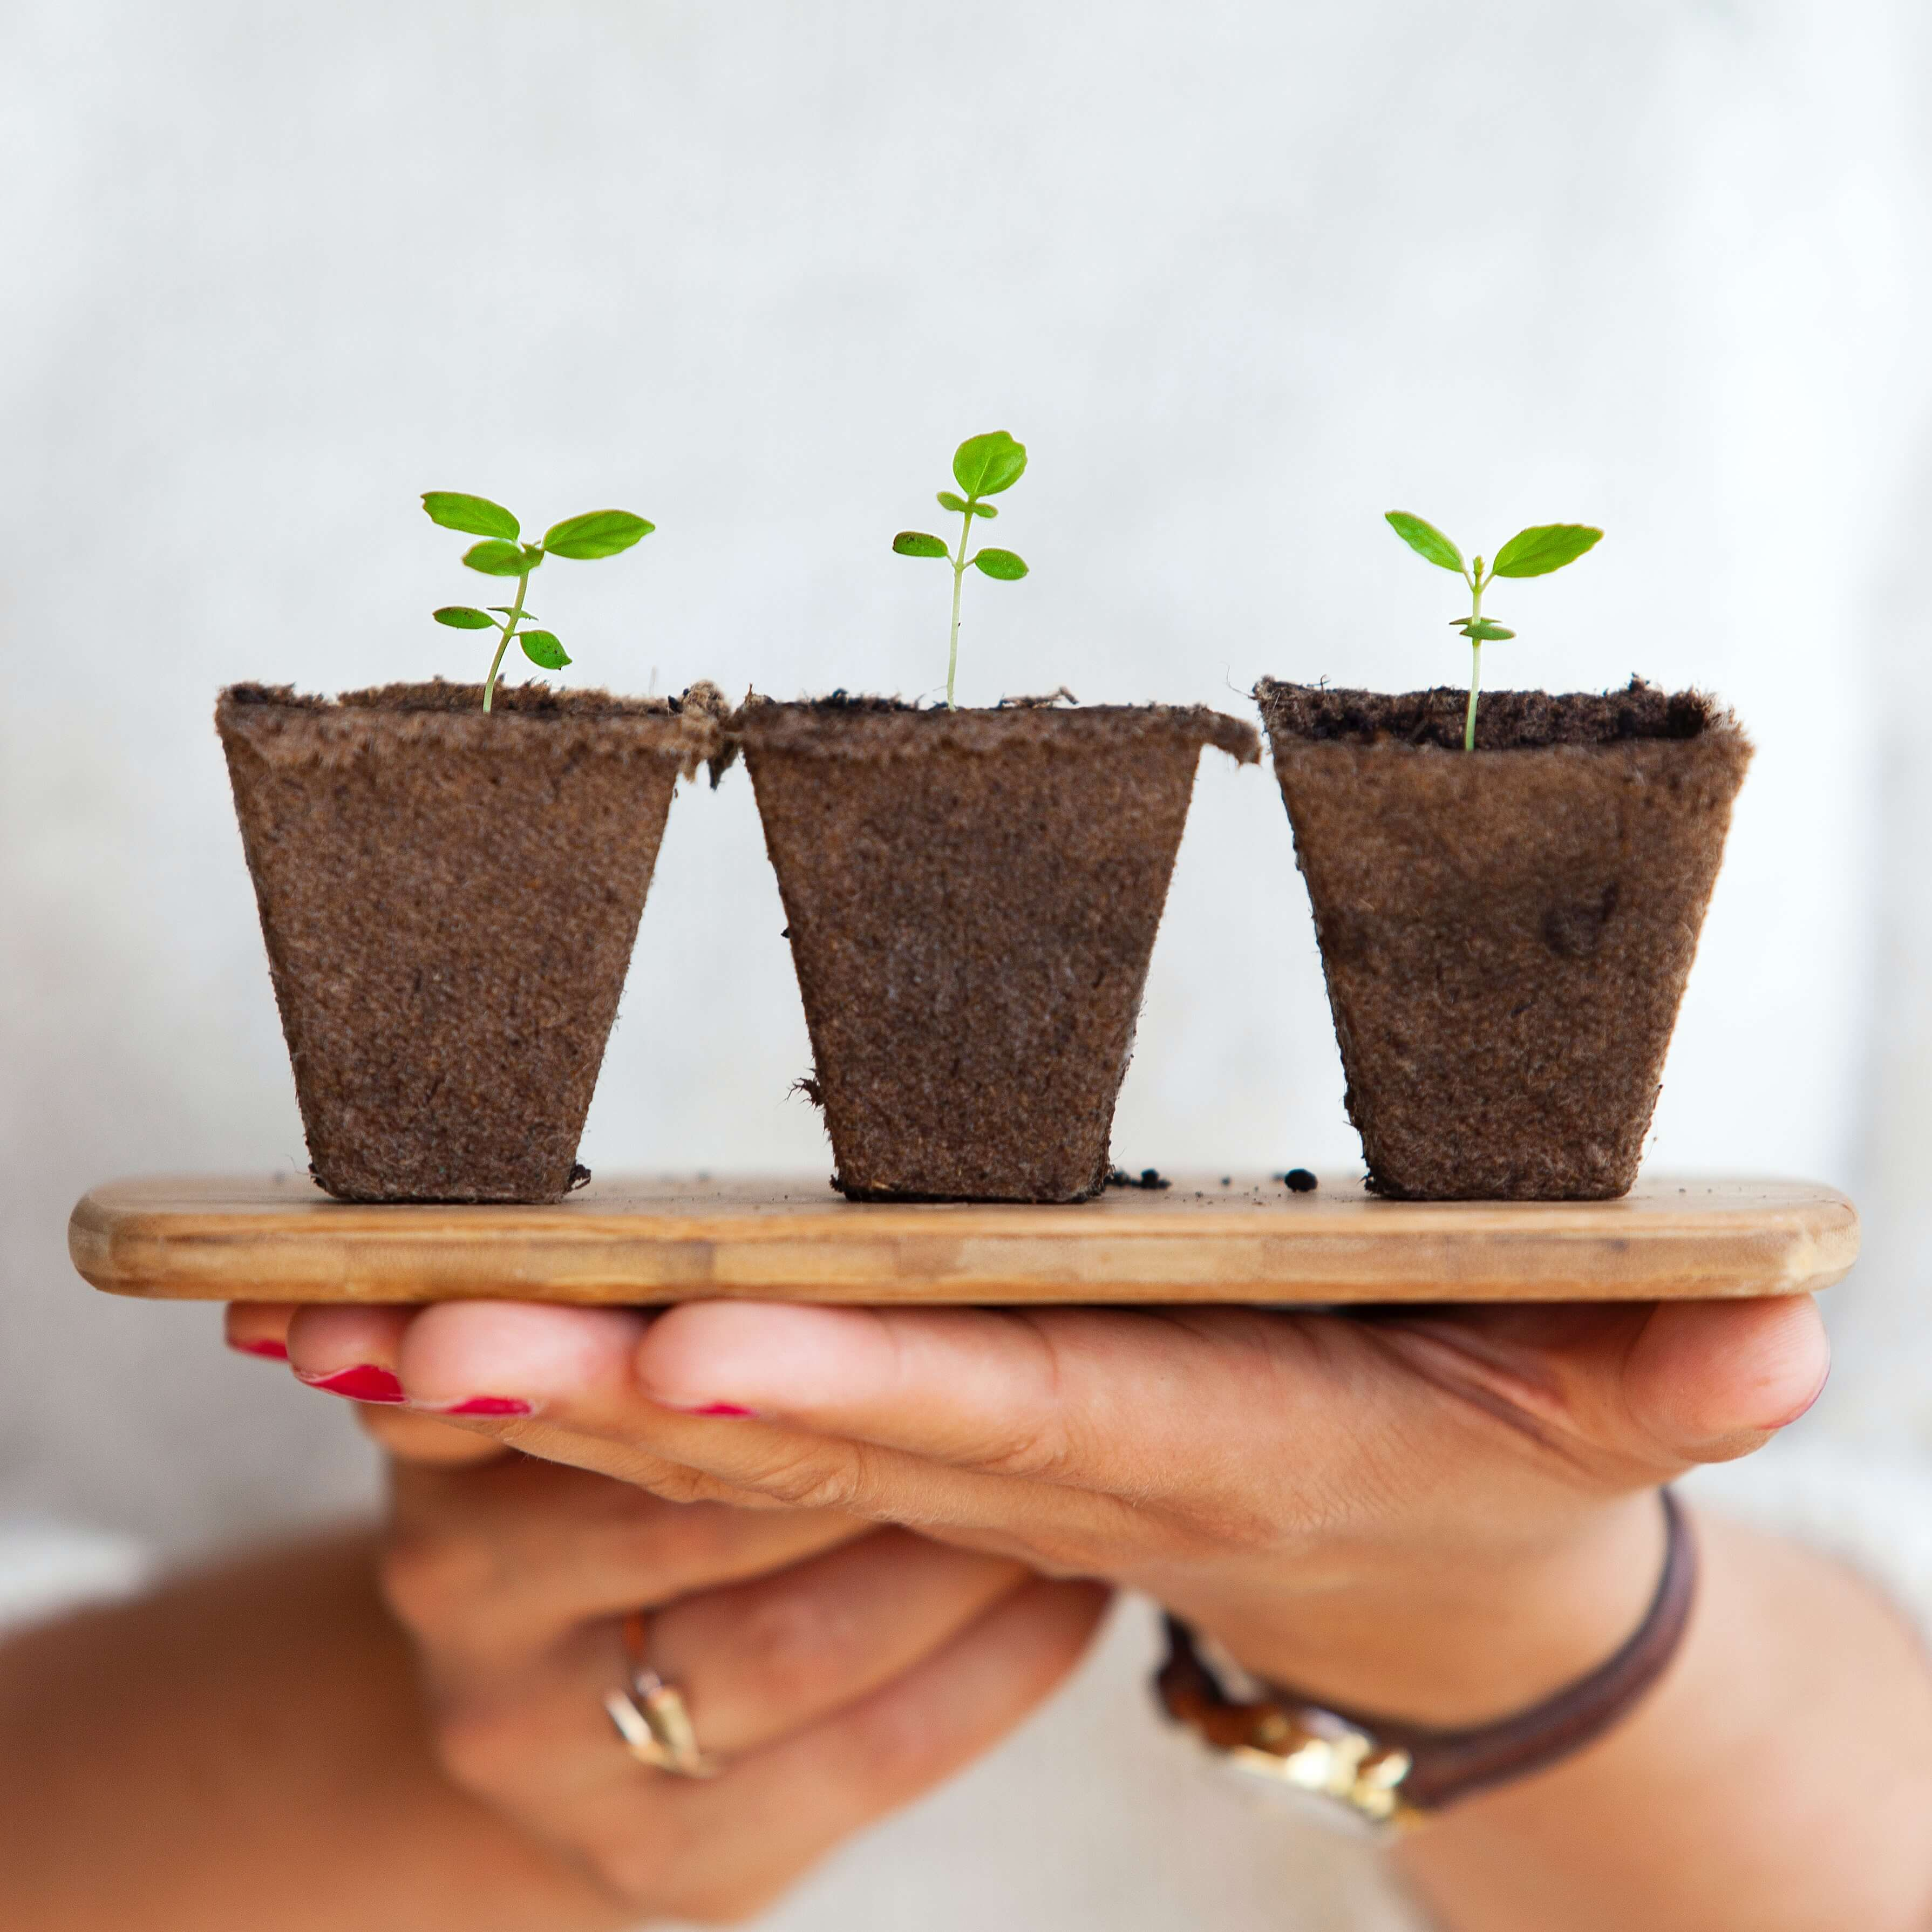 early stage plants growing like L&D budding at your company